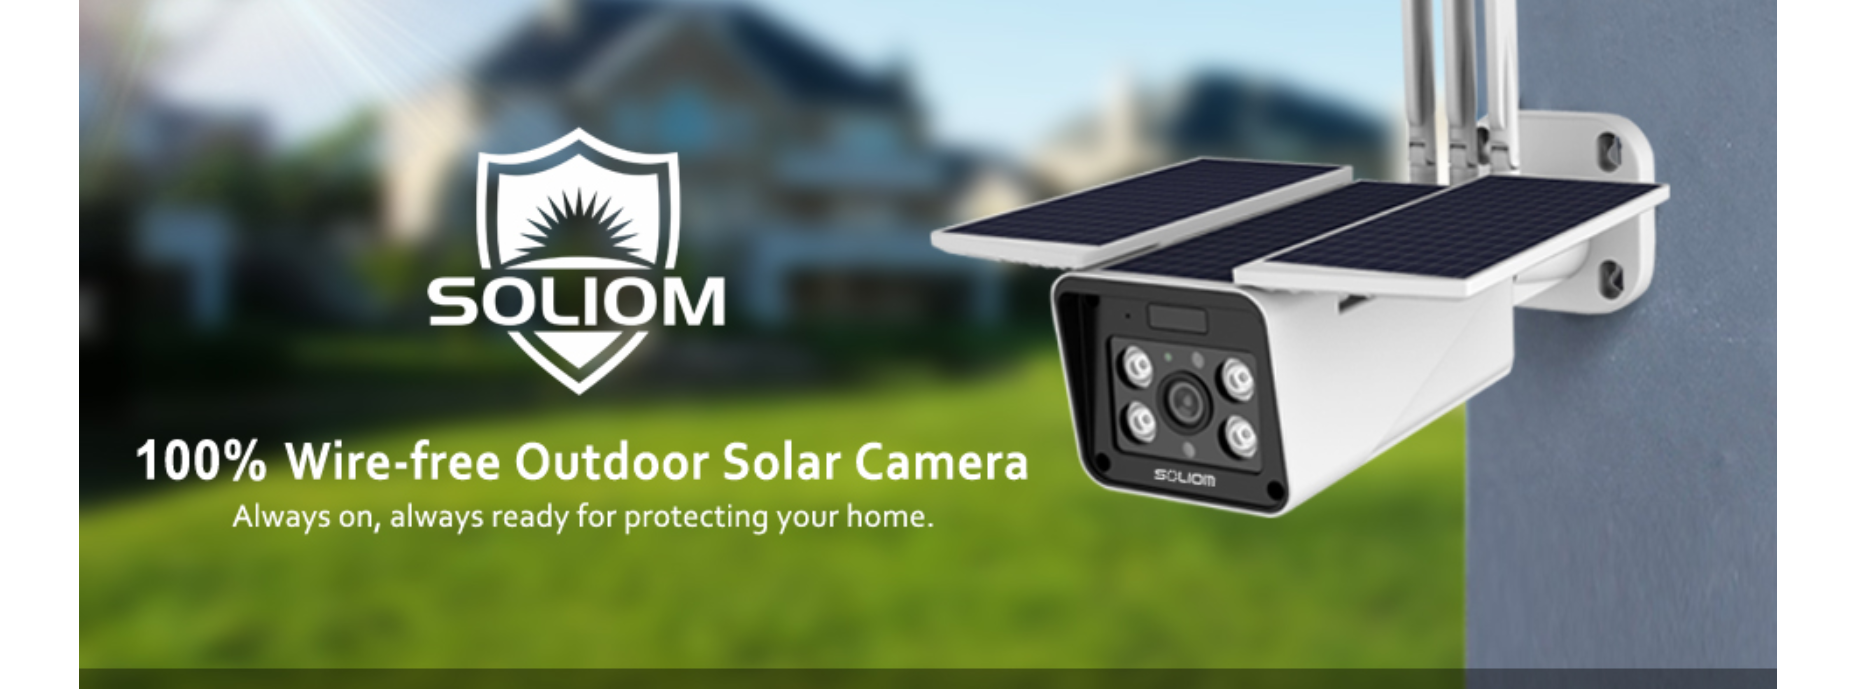 Soliom outdoor security camera reviews- lifestyle pic